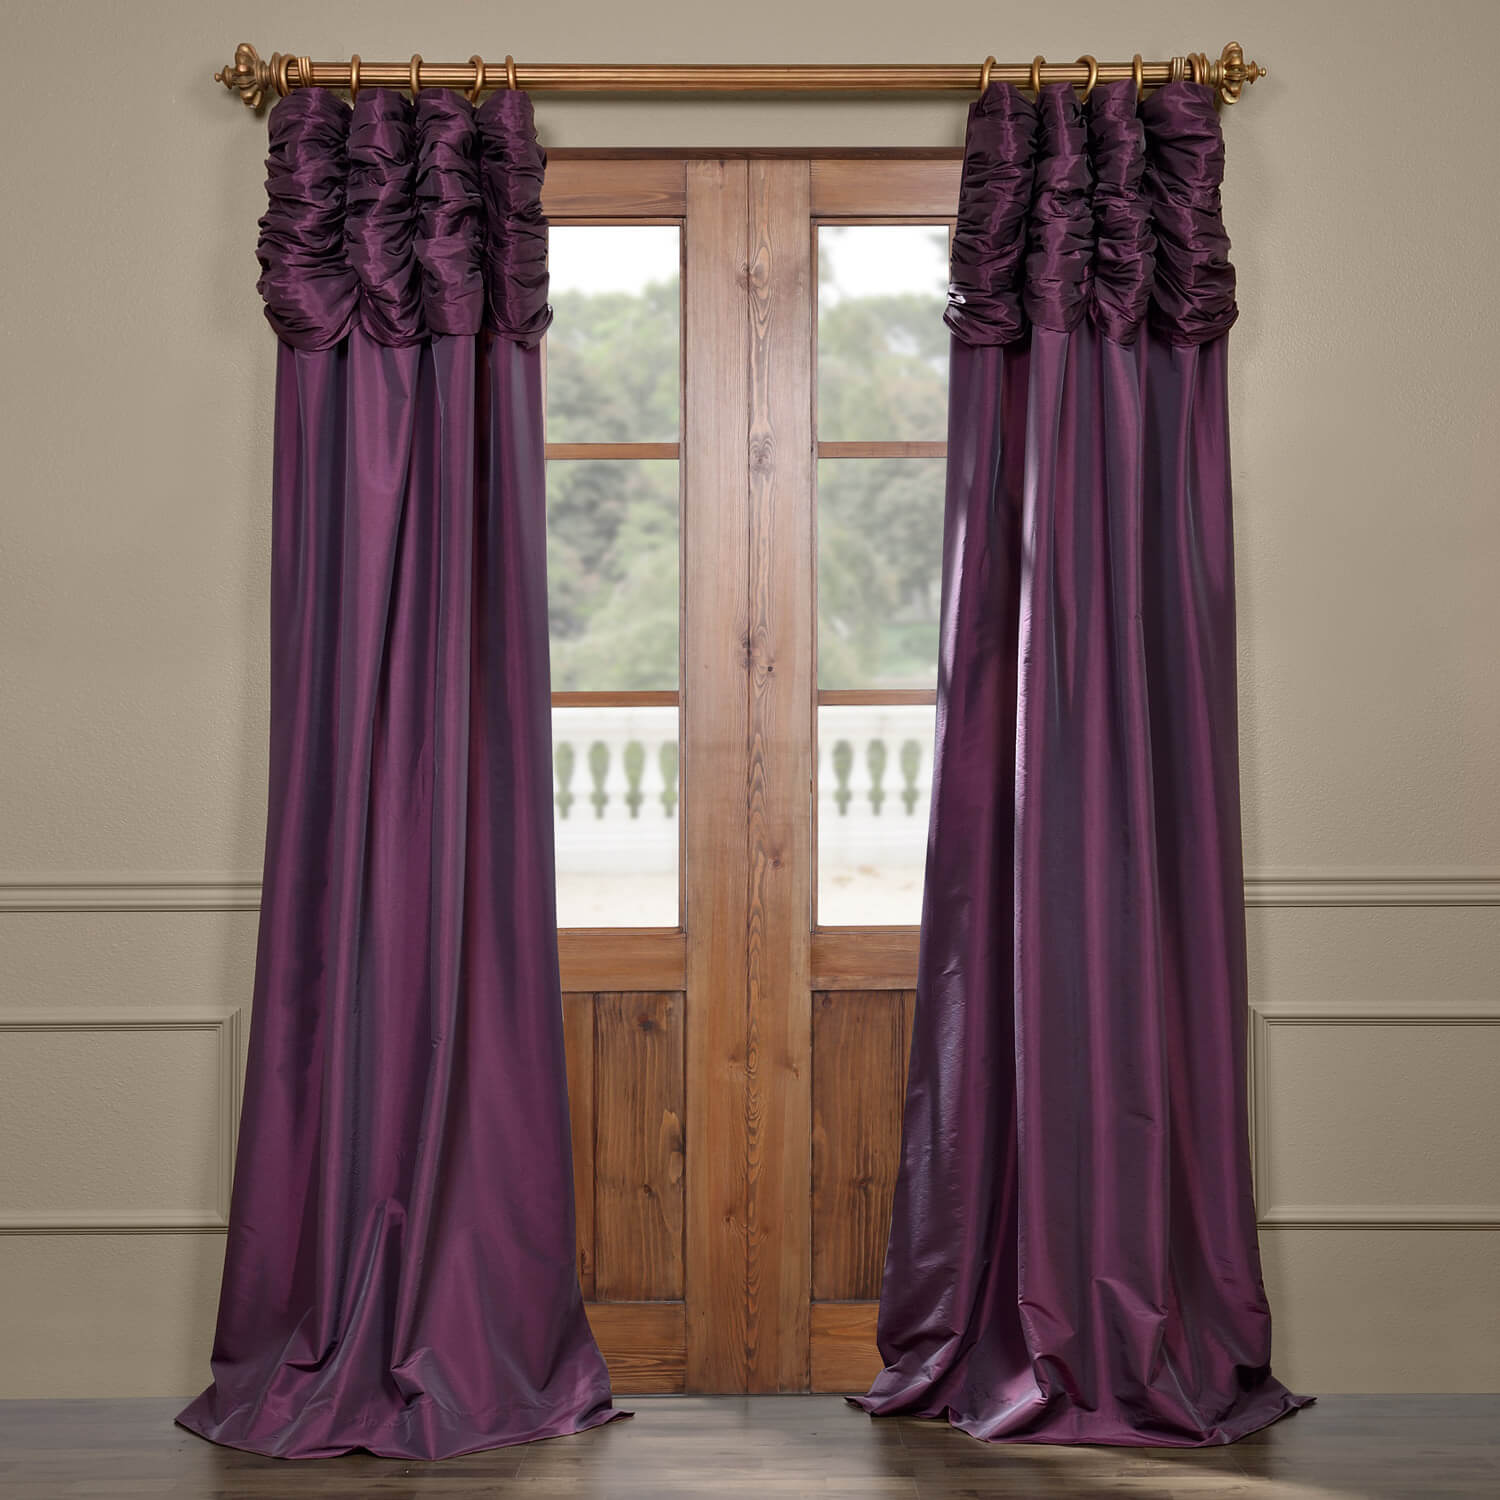 Dahlia Ruched Faux Solid Taffeta Curtain